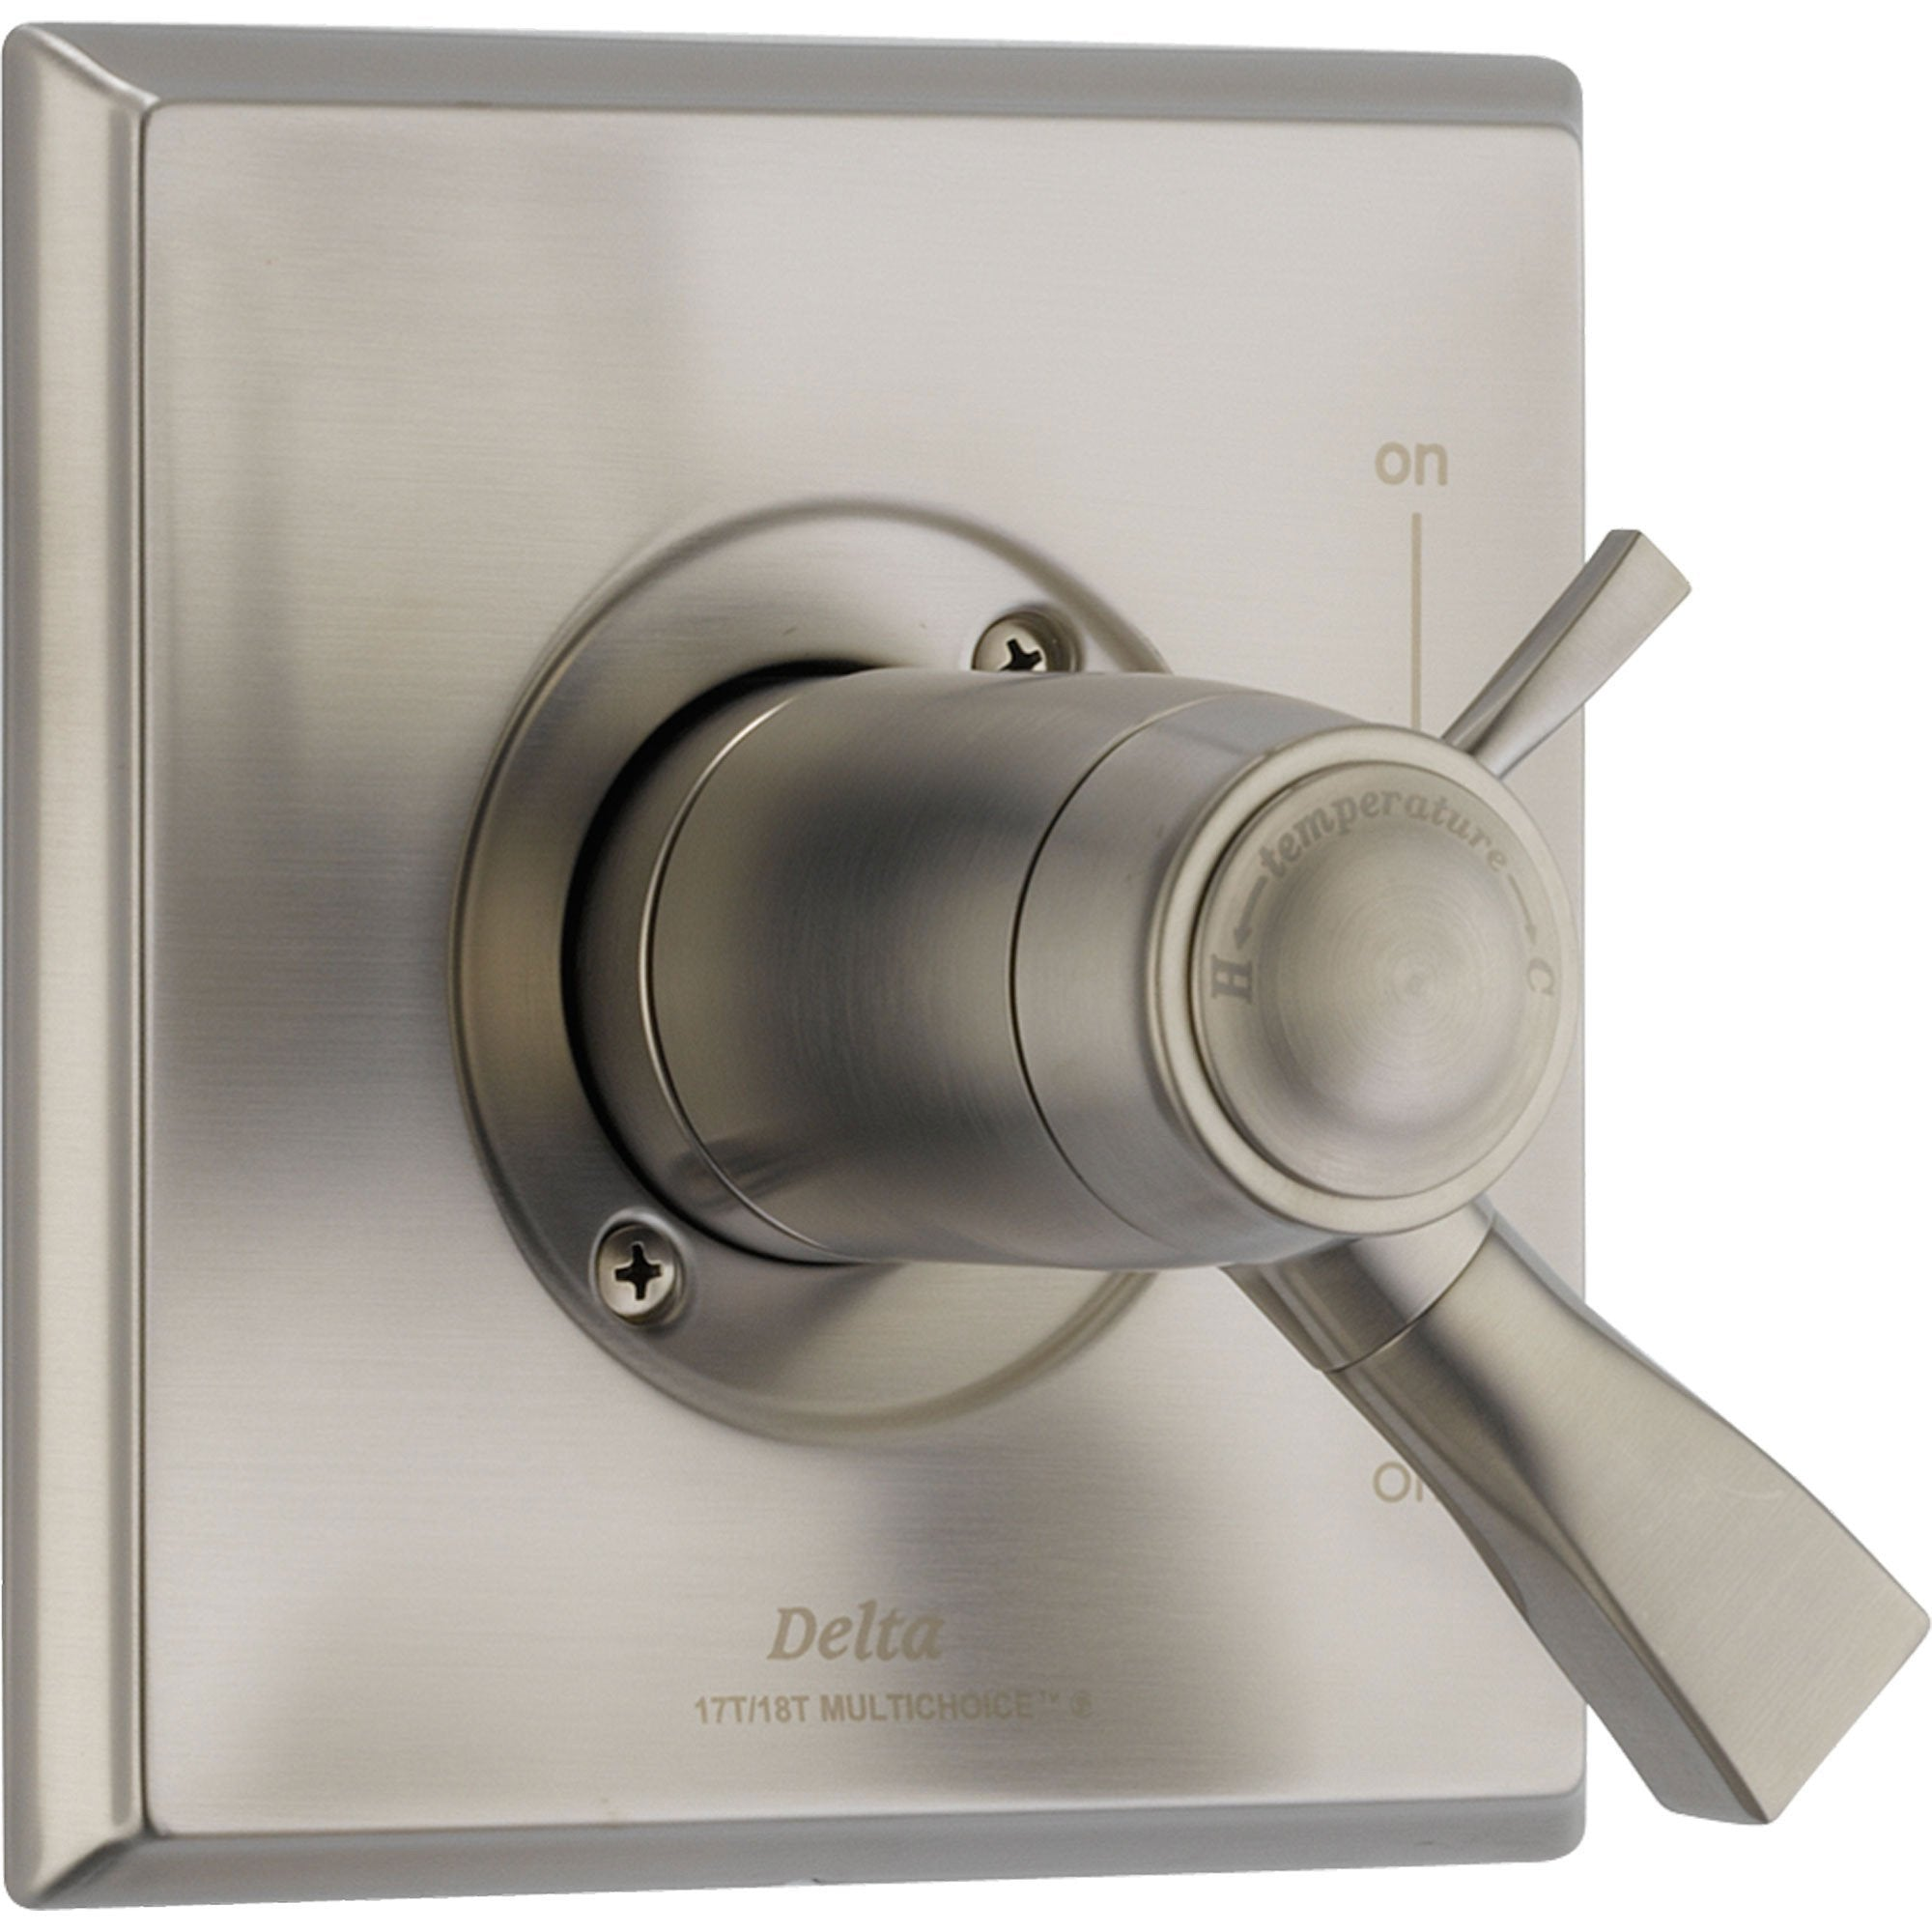 Delta Dryden Stainless Steel Thermostatic Shower Valve Dual Control Trim 457069